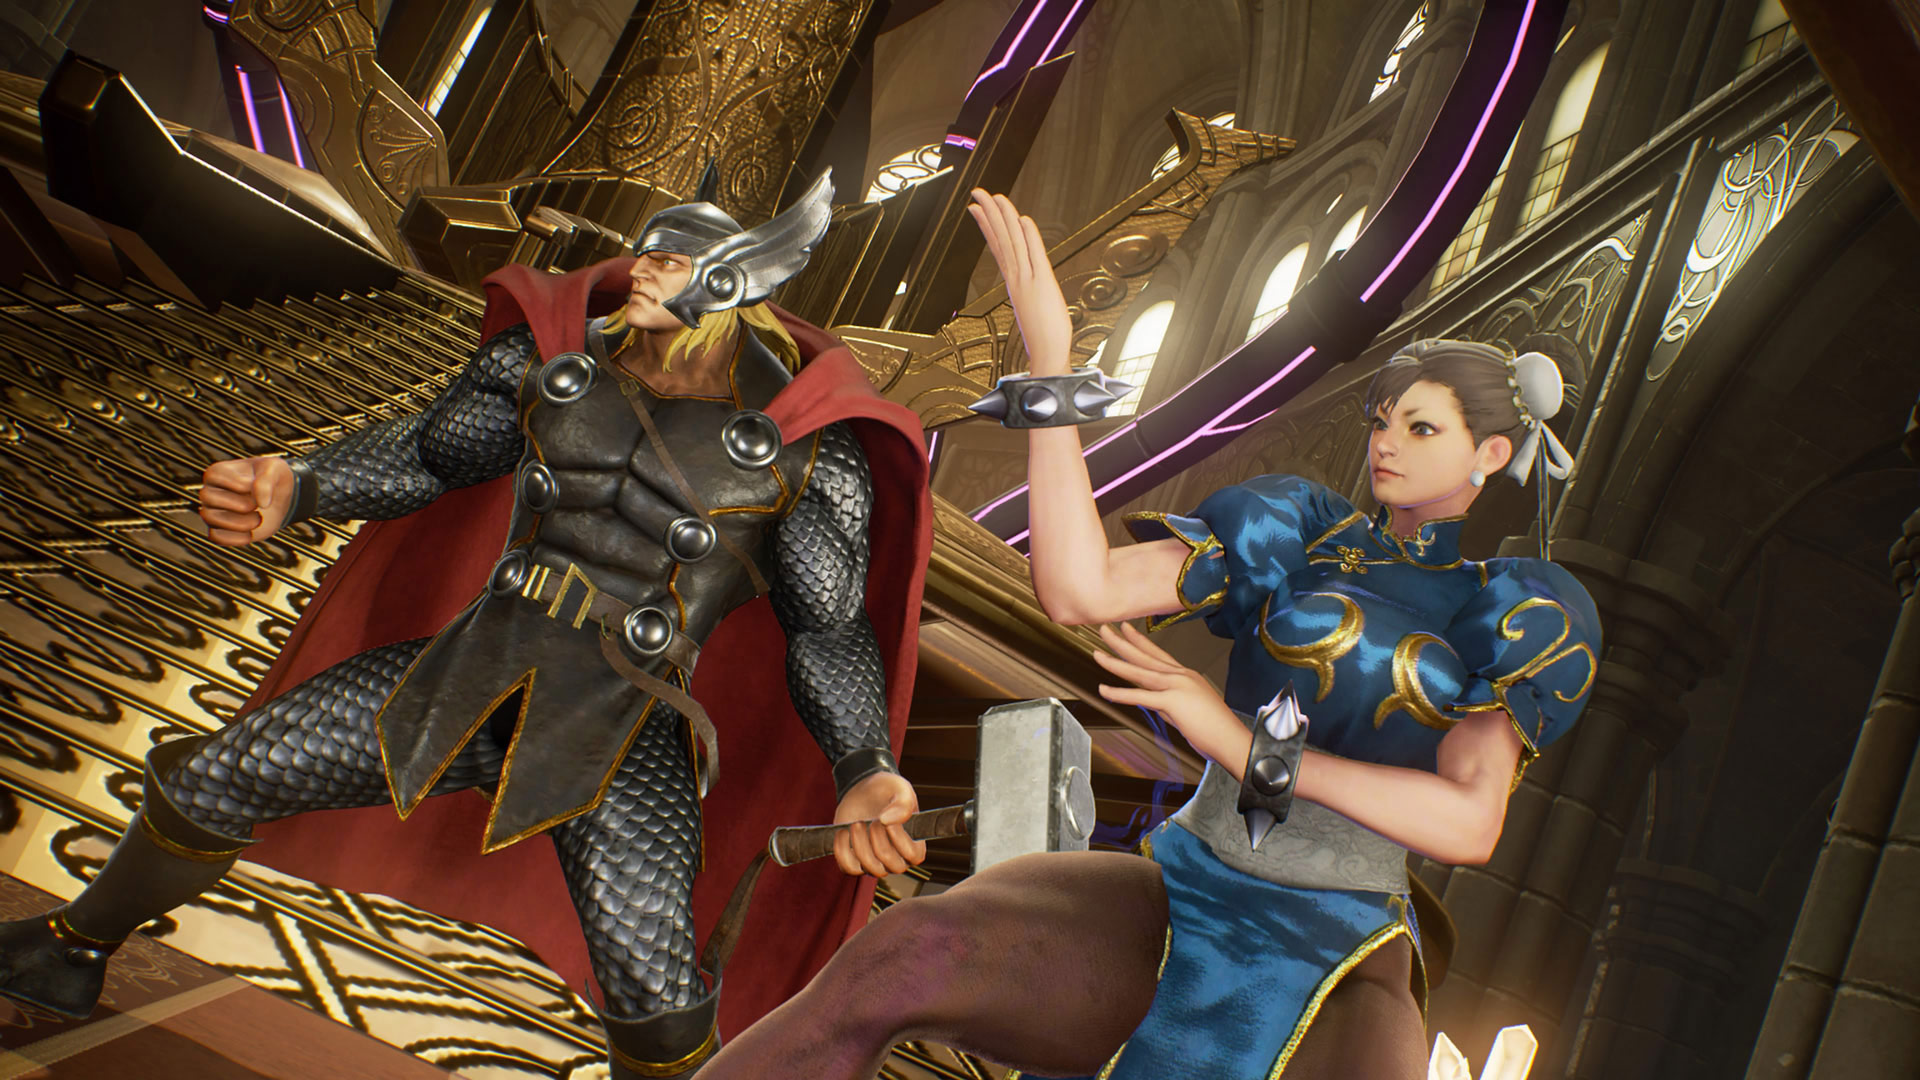 Marvel vs. Capcom: Infinite gameplay screenshots 2 out of 6 image gallery